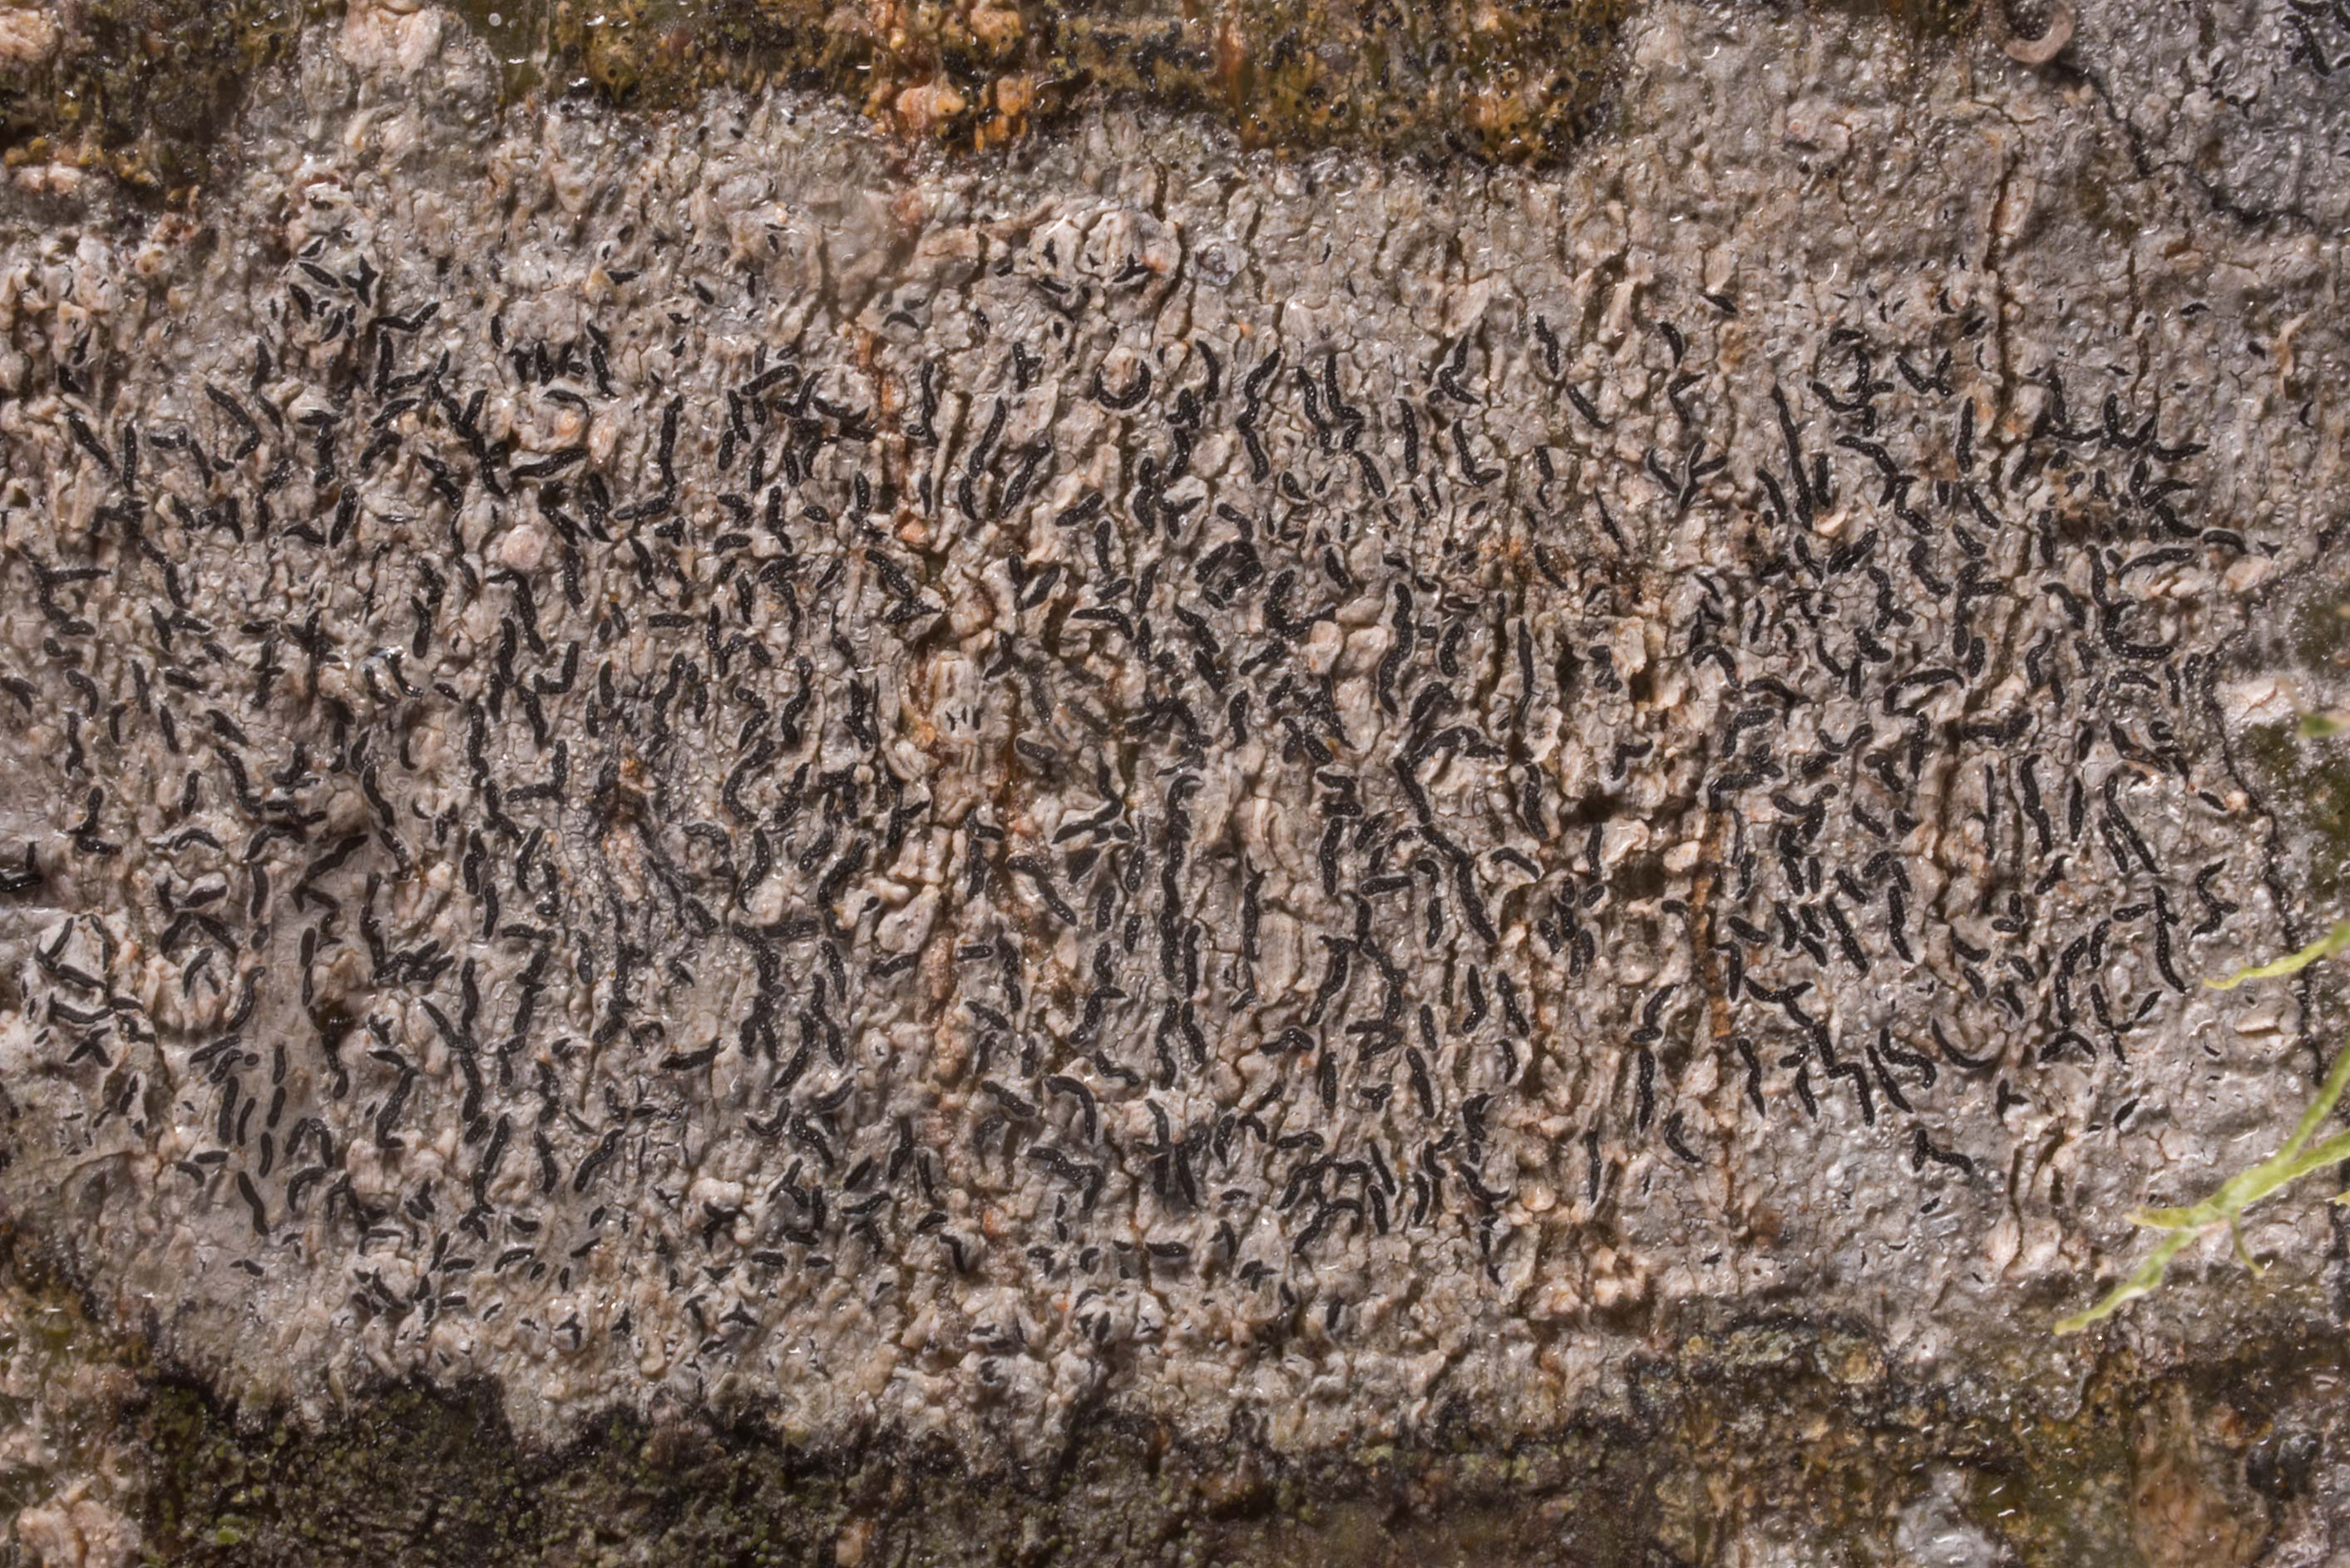 Details of script lichen (Graphis) on bark of...State Historic Site. Washington, Texas